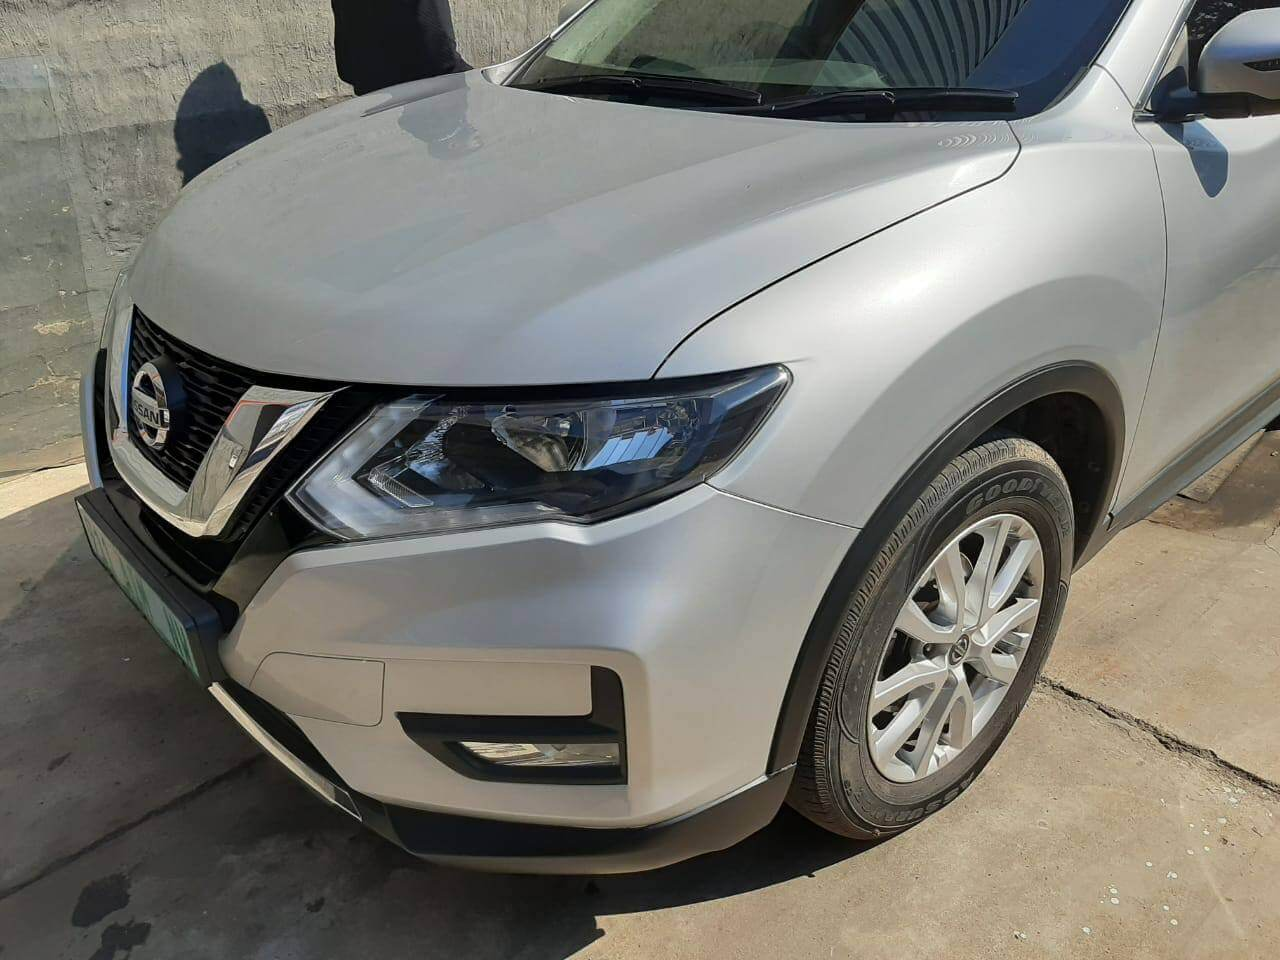 Nissan X-Trail - panelbeating bonnet complete at GP Motor Works